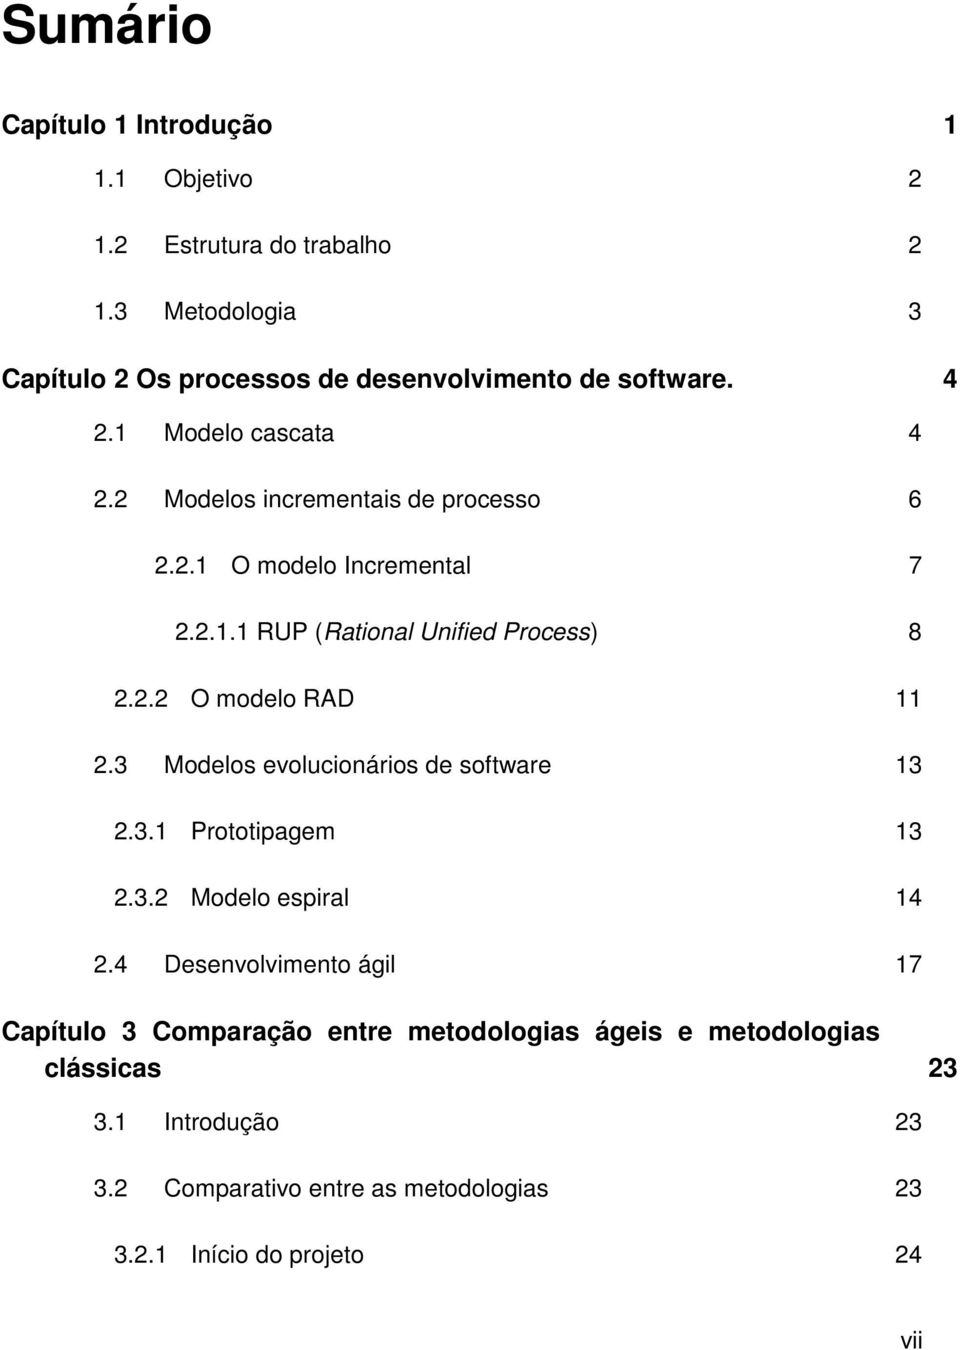 2.1.1 RUP (Rational Unified Process) 8 2.2.2 O modelo RAD 11 2.3 Modelos evolucionários de software 13 2.3.1 Prototipagem 13 2.3.2 Modelo espiral 14 2.